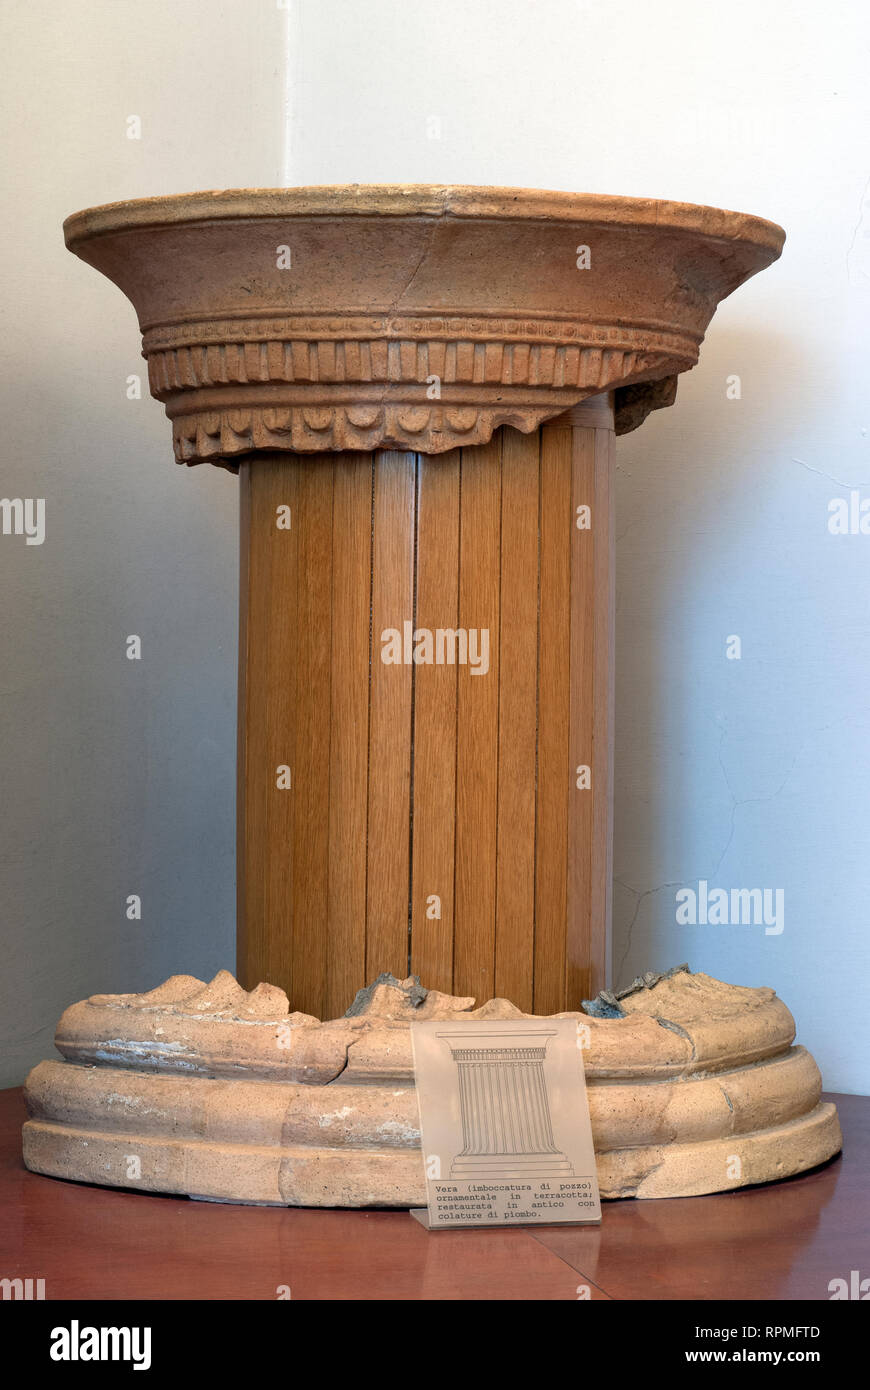 "Ancient water well mouth restored at Archaeological Museum Fregellae ""AMEDEO MAIURI"", Ceprano, Lazio, Italy Stock Photo"